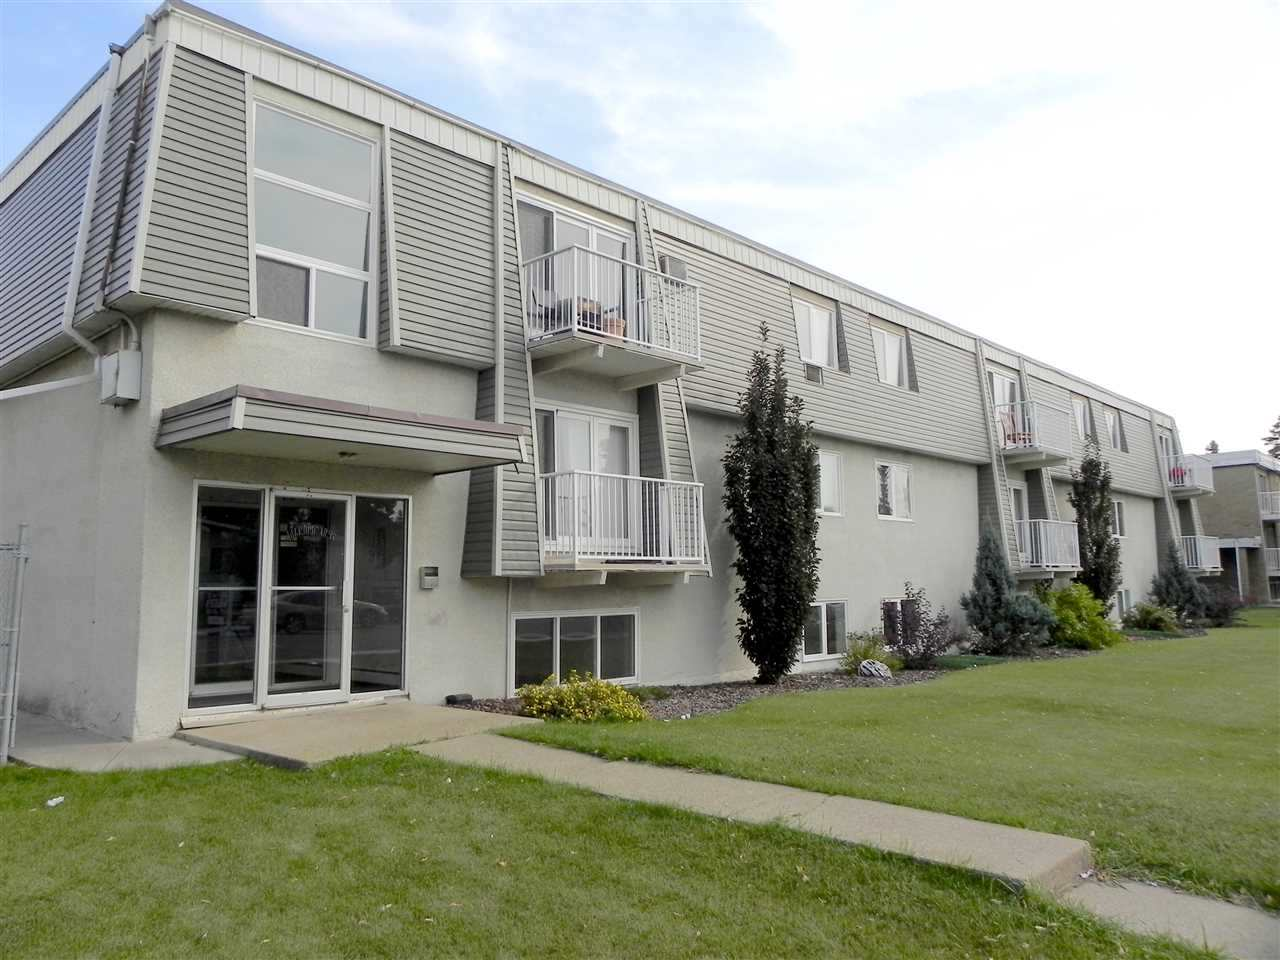 5 10325 156 Street NW, 1 bed, 1 bath, at $95,000